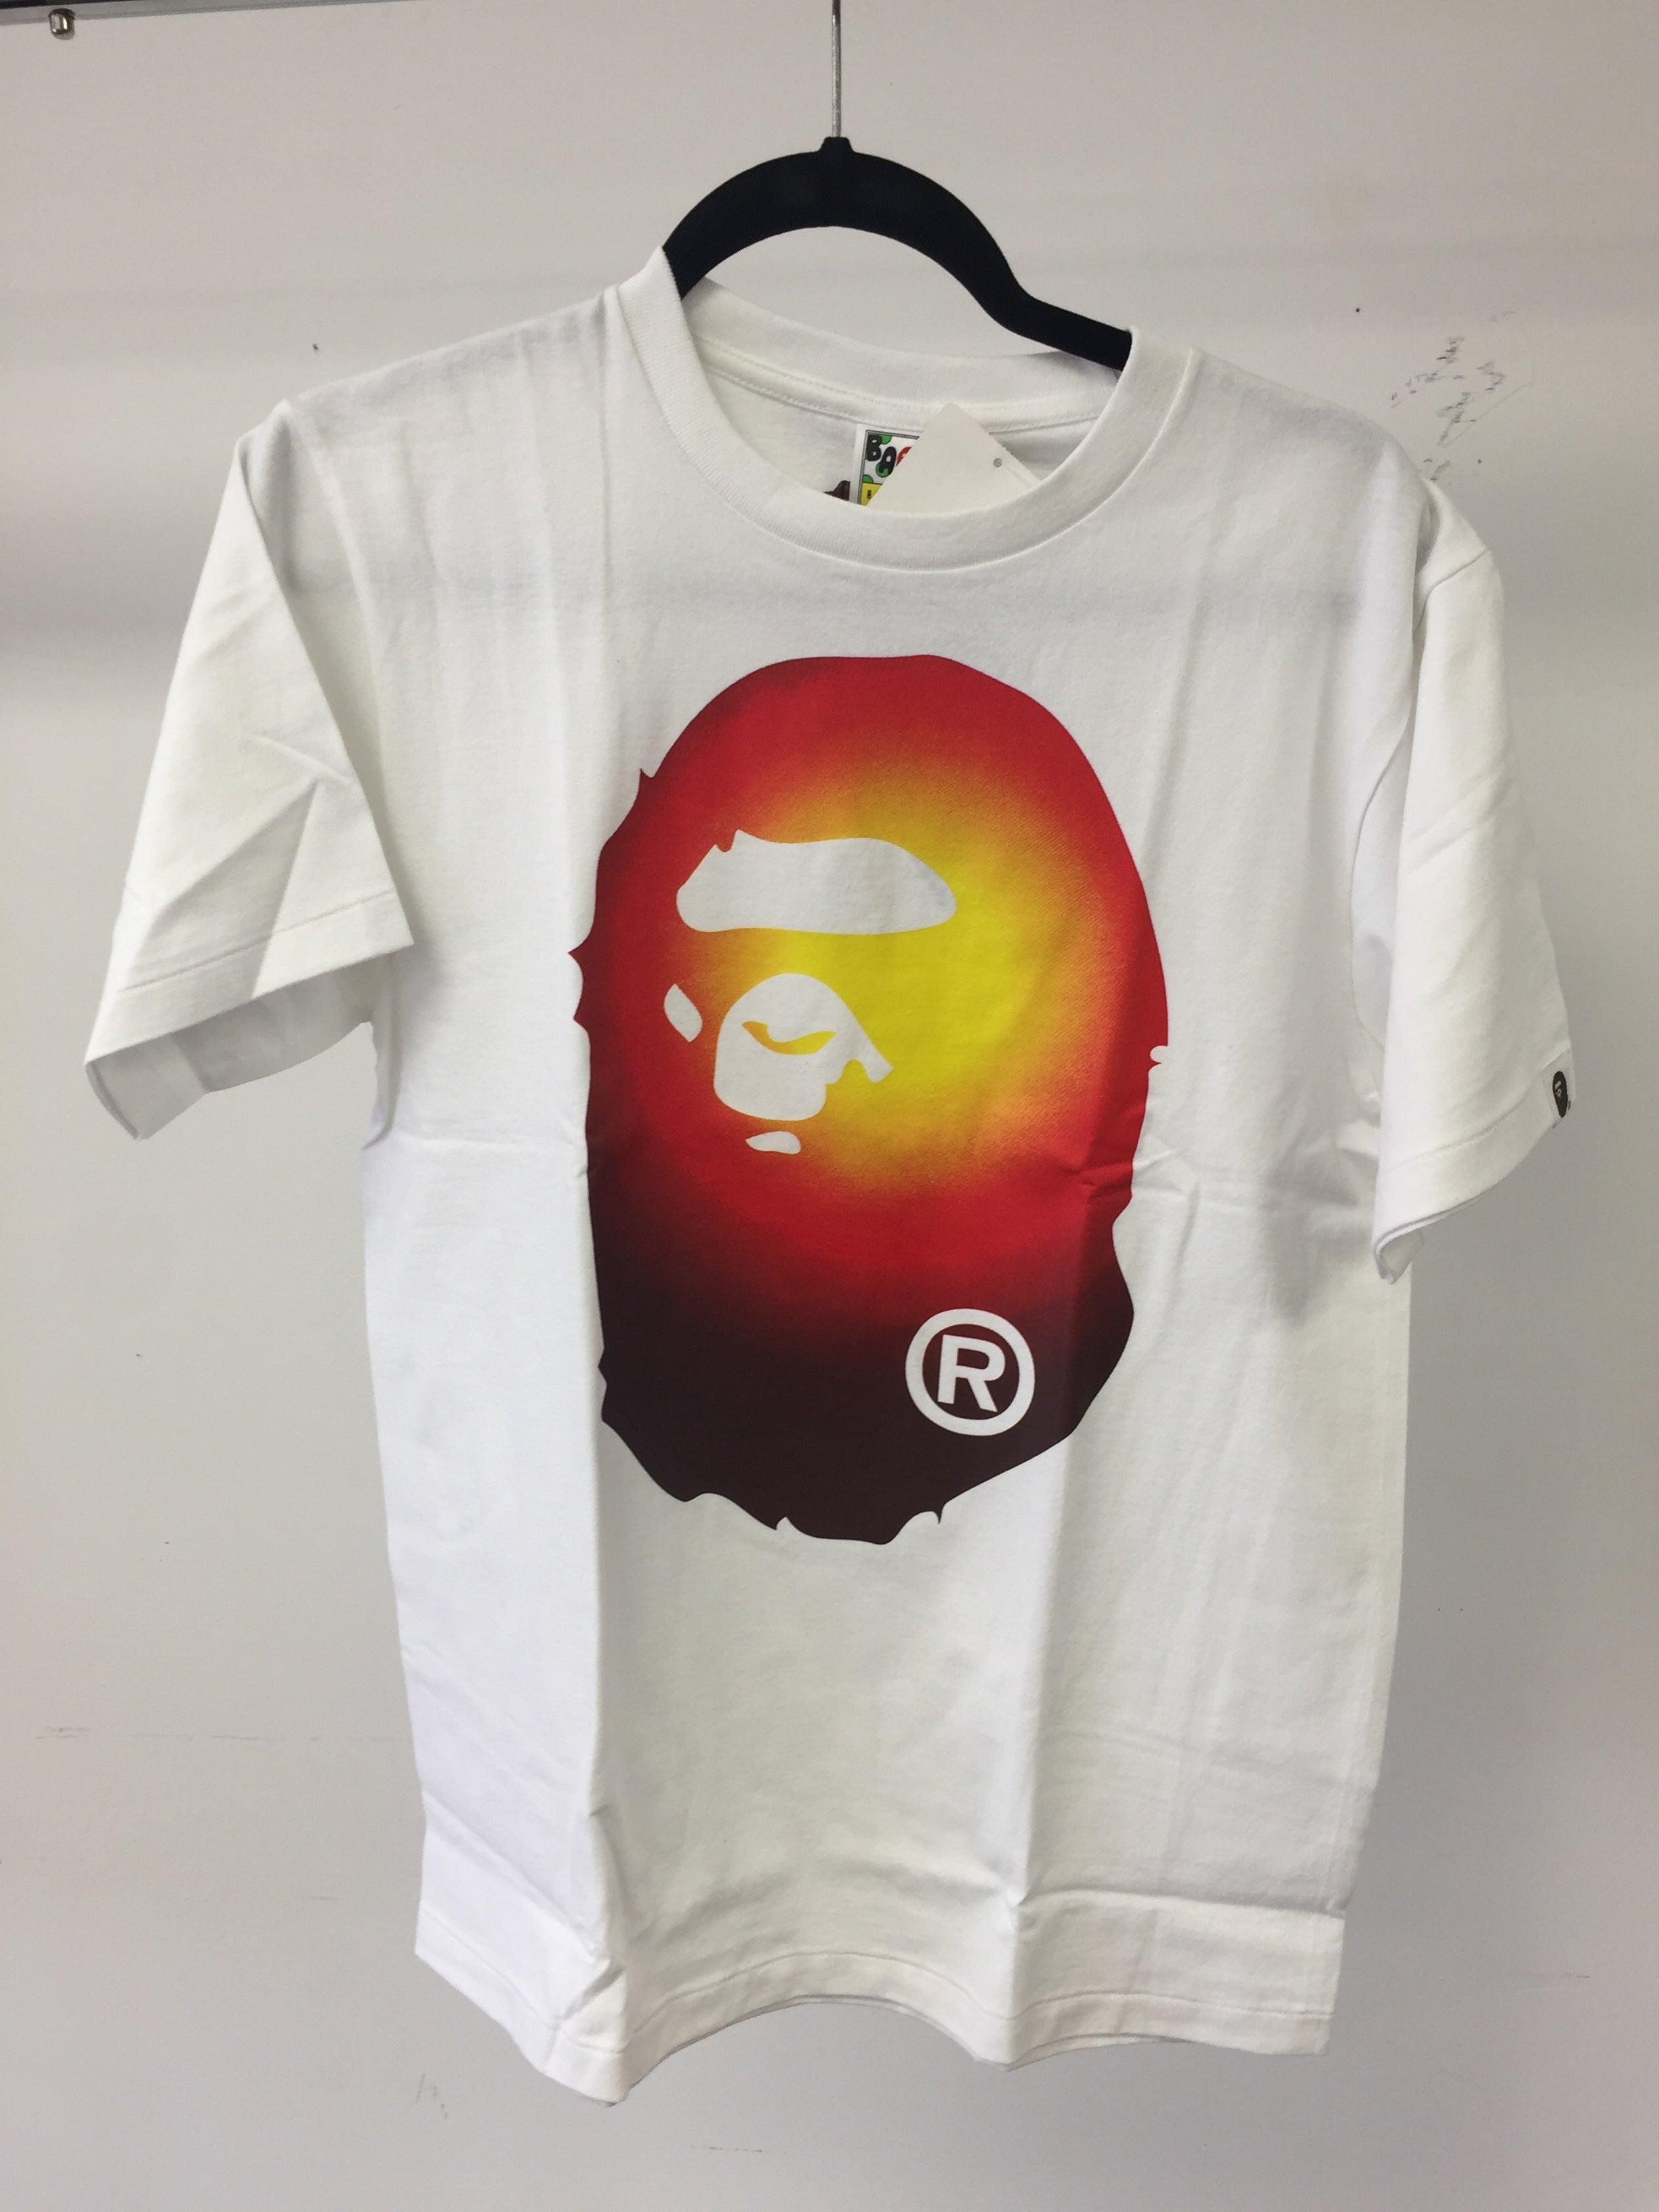 Bape T-Shirt - White - Red Yellow Ape Head (Size MEDIUM)